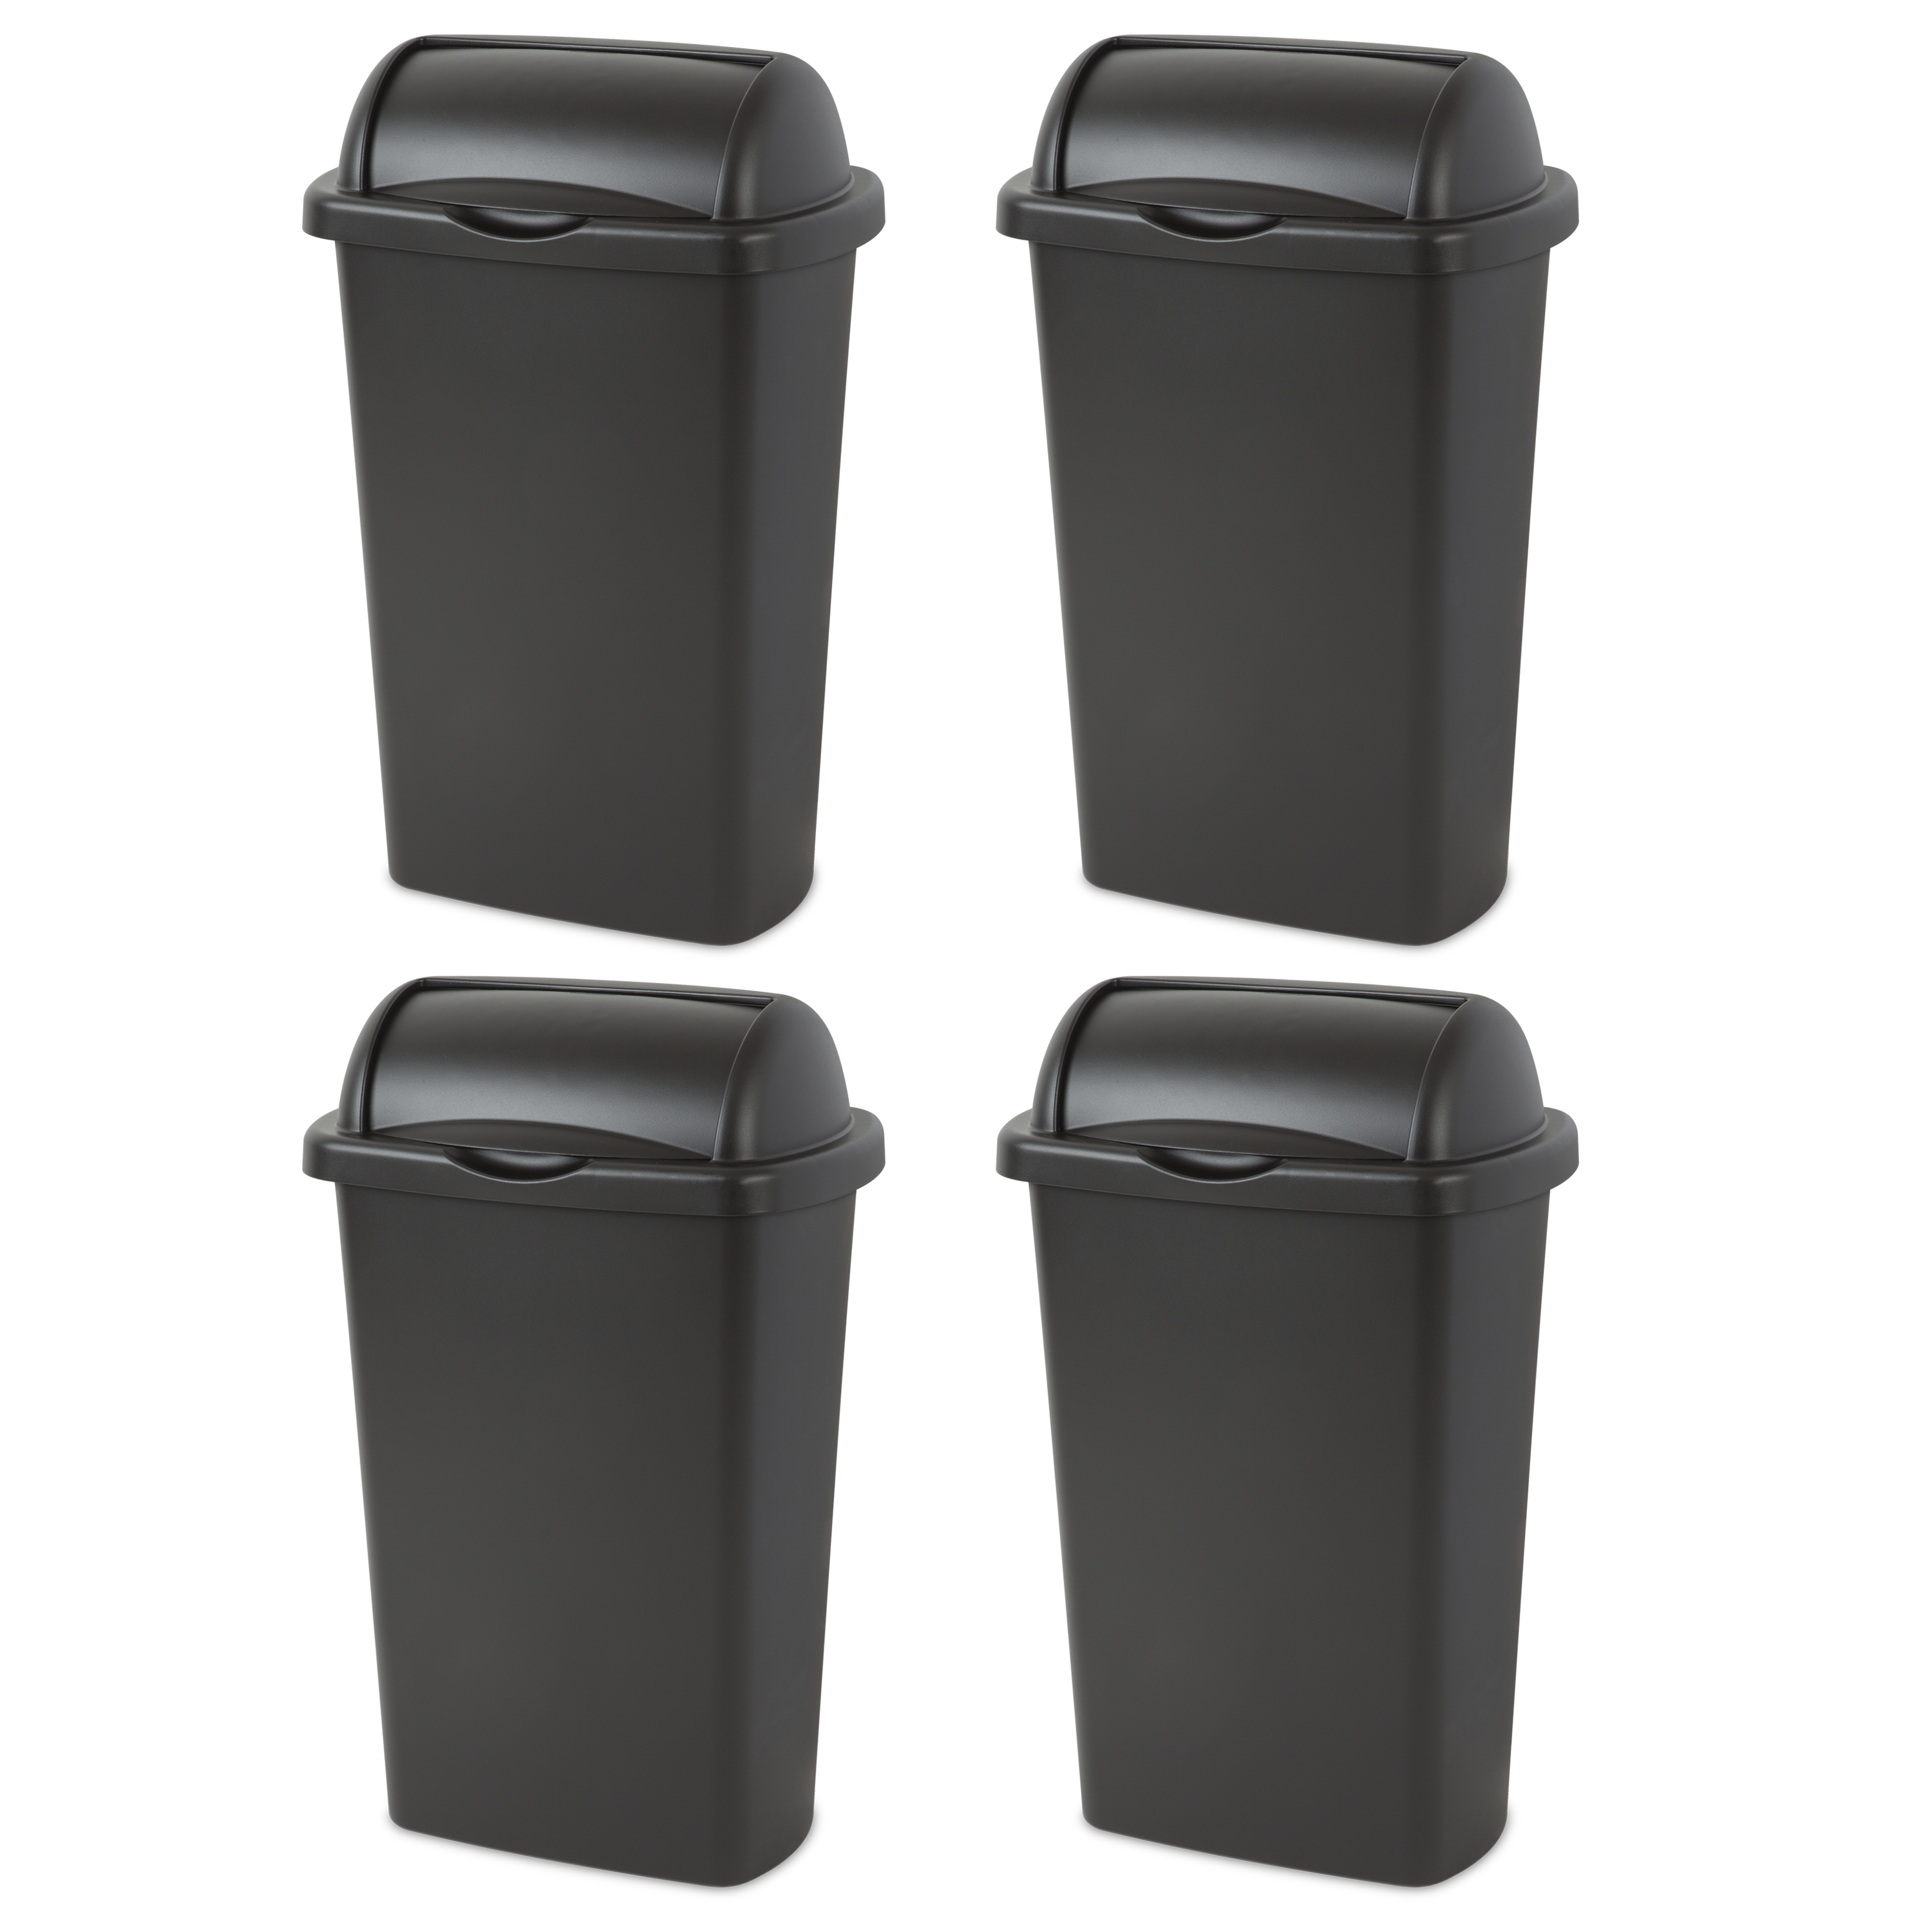 Sterilite, 13 Gal./49 L Roll Top Wastebasket, Black , Case of 4